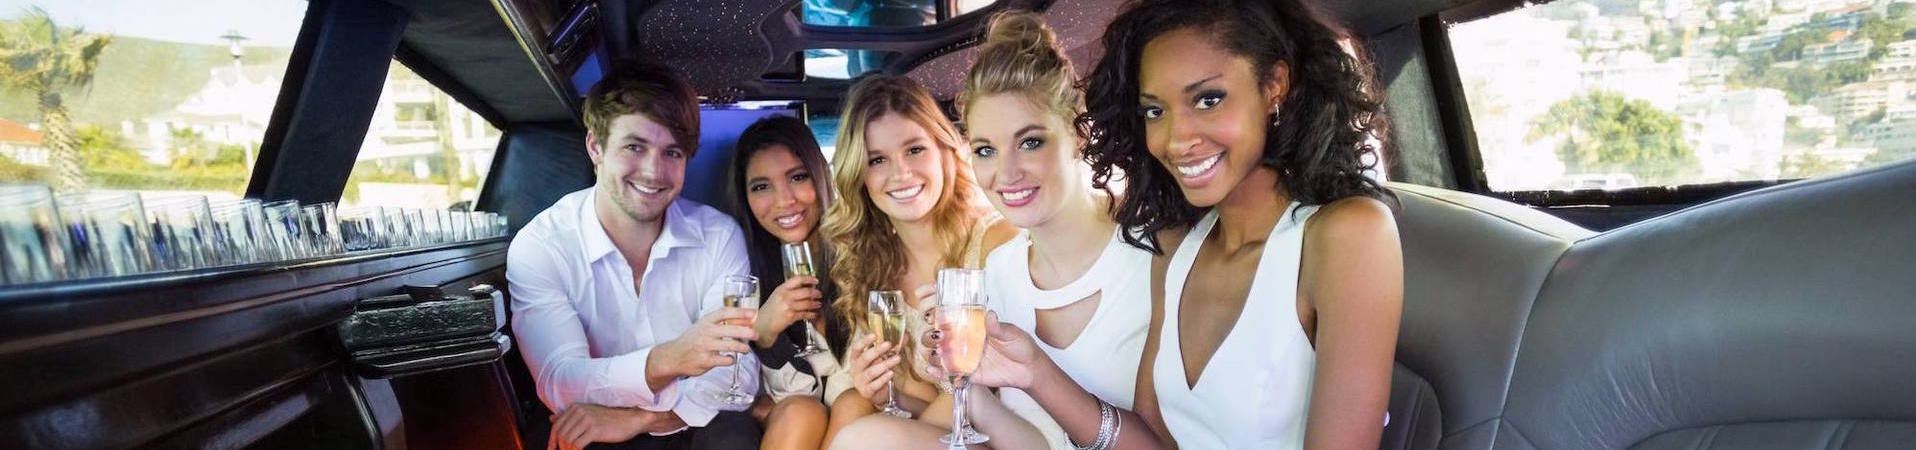 Los Angeles Concert Limo Limousine Rentals In Los Angeles